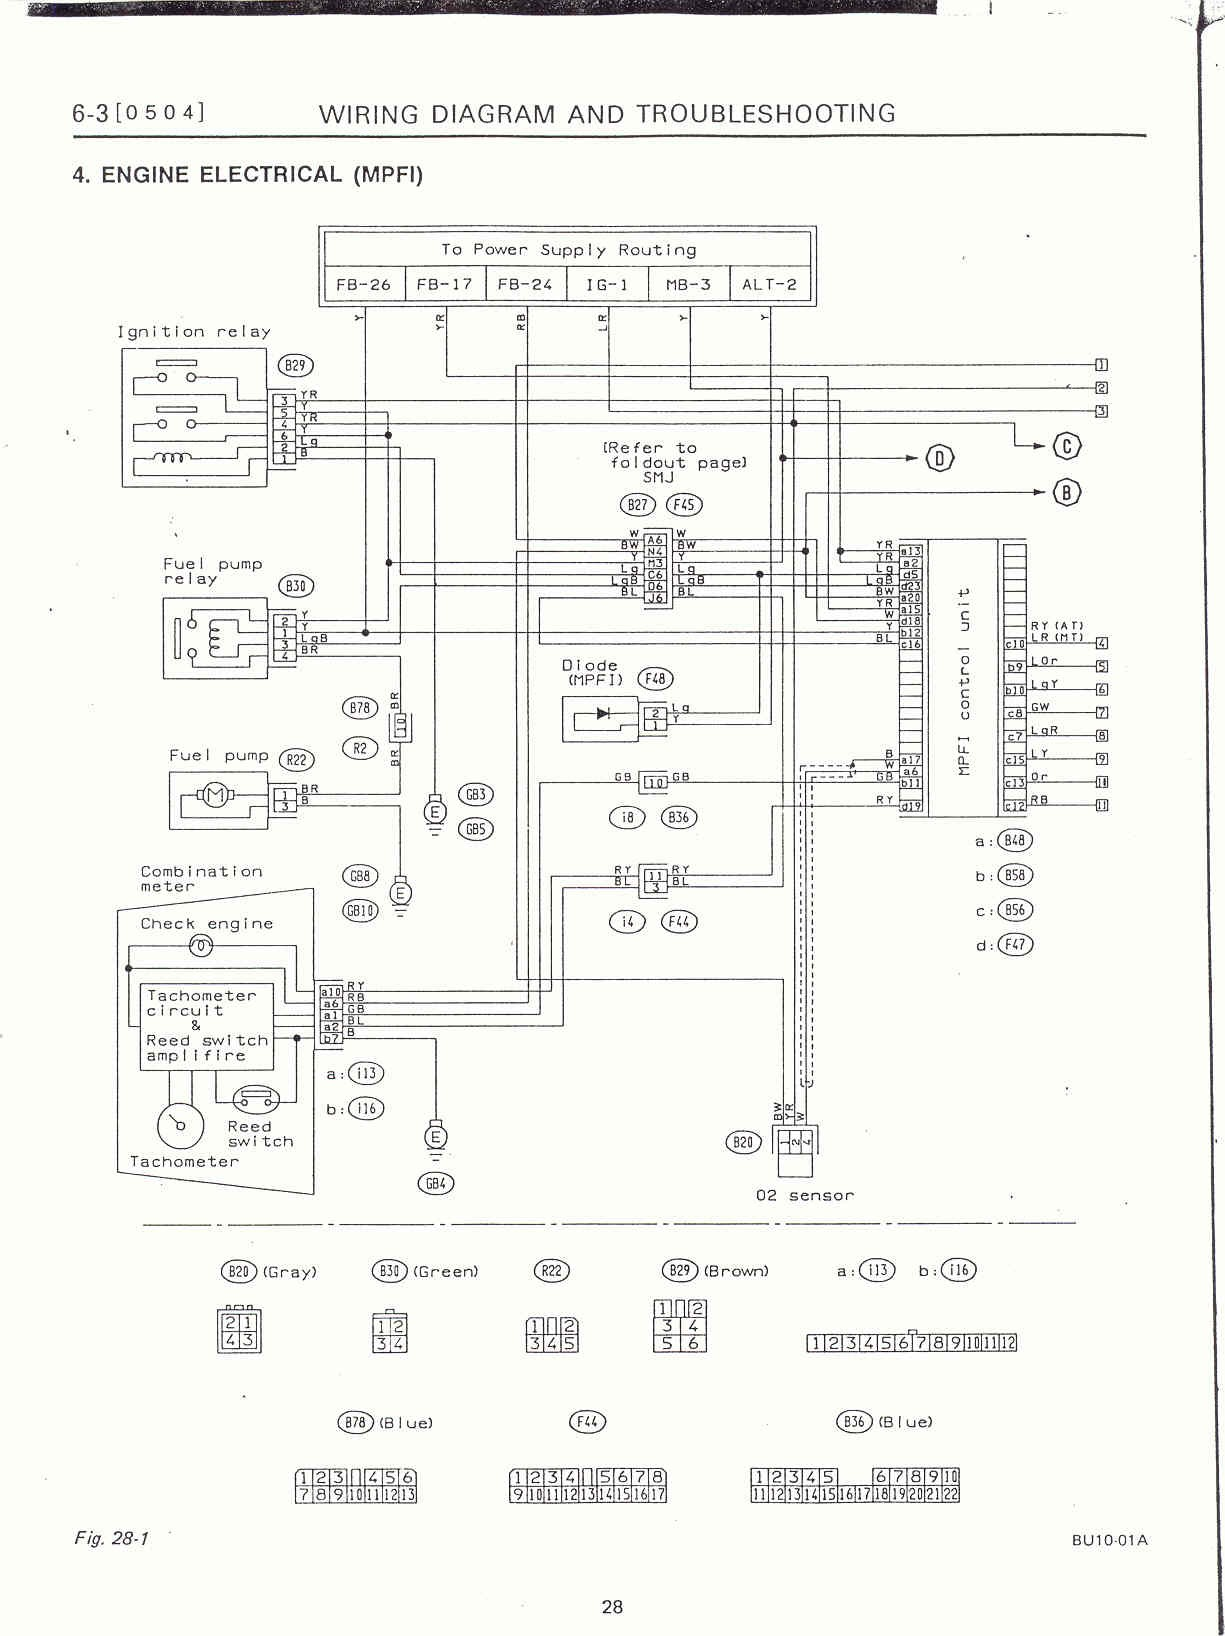 2000 Subaru Legacy L Wiring Diagram - Cars Wiring Diagram Blog